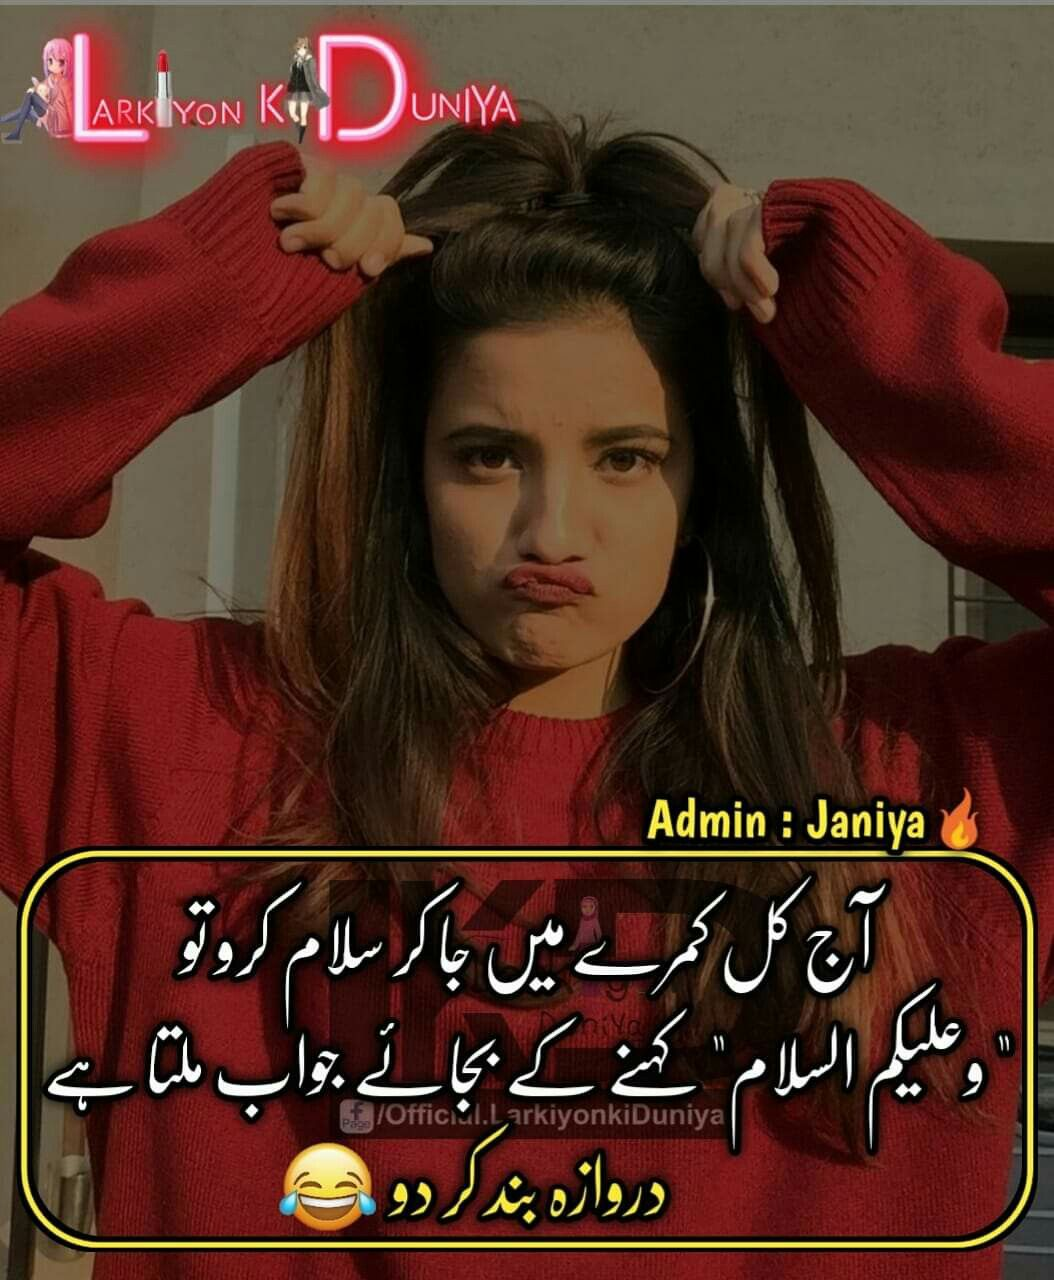 Dairy Milk Urdu Funny Quotes Funny Facts Funny Quotes